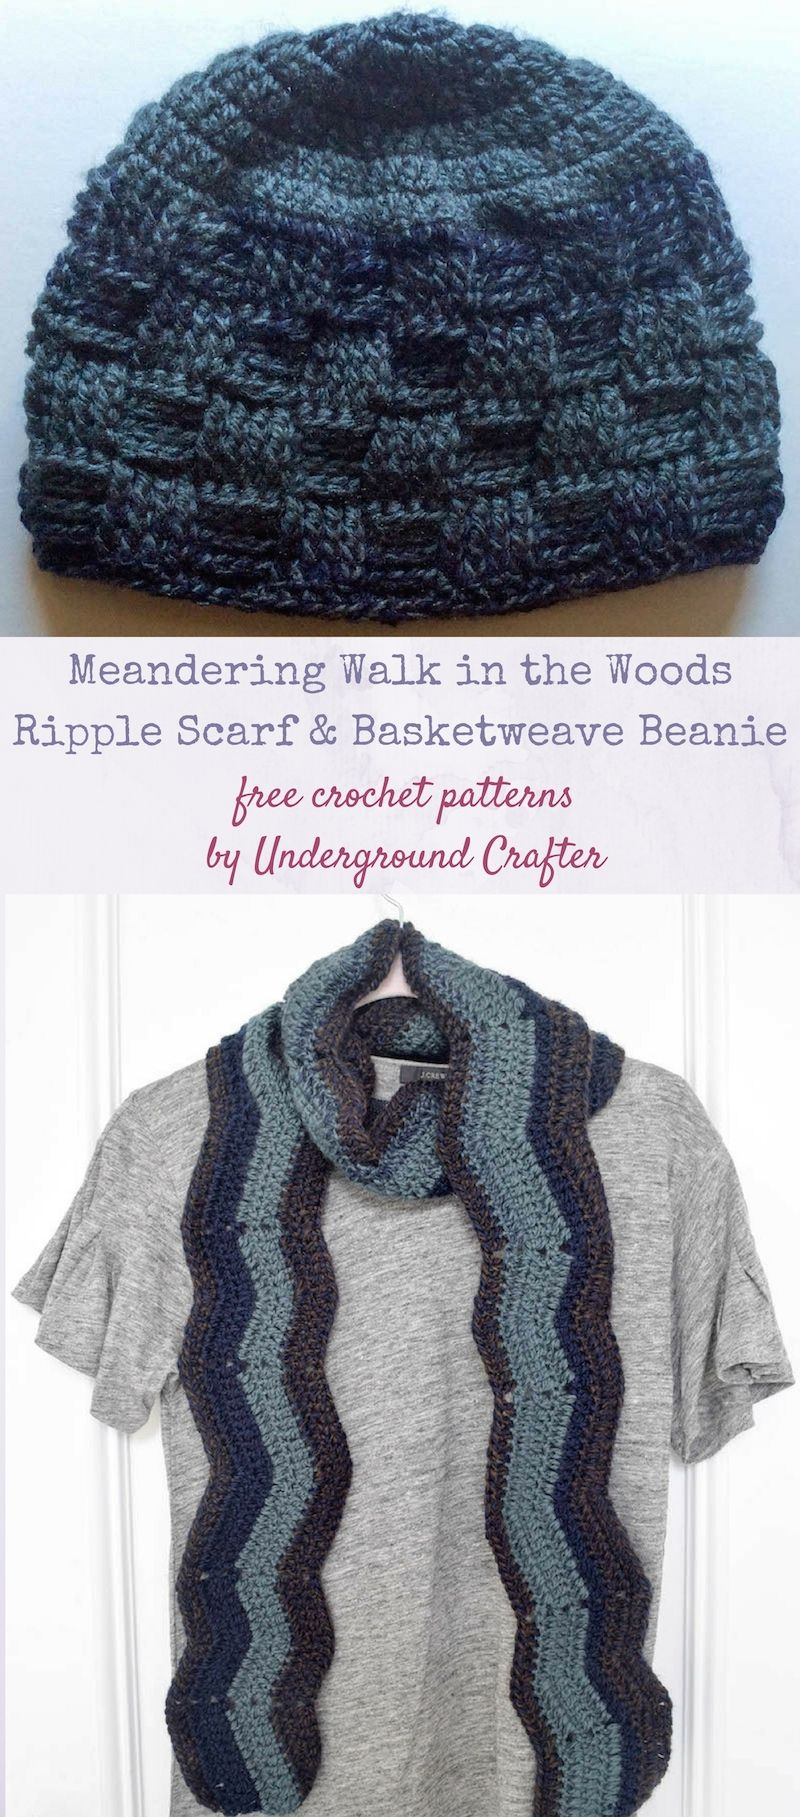 Free crochet patterns meandering walk in the woods basketweave free crochet patterns meandering walk in the woods basketweave beanie and ripple scarf by underground crafter dt1010fo